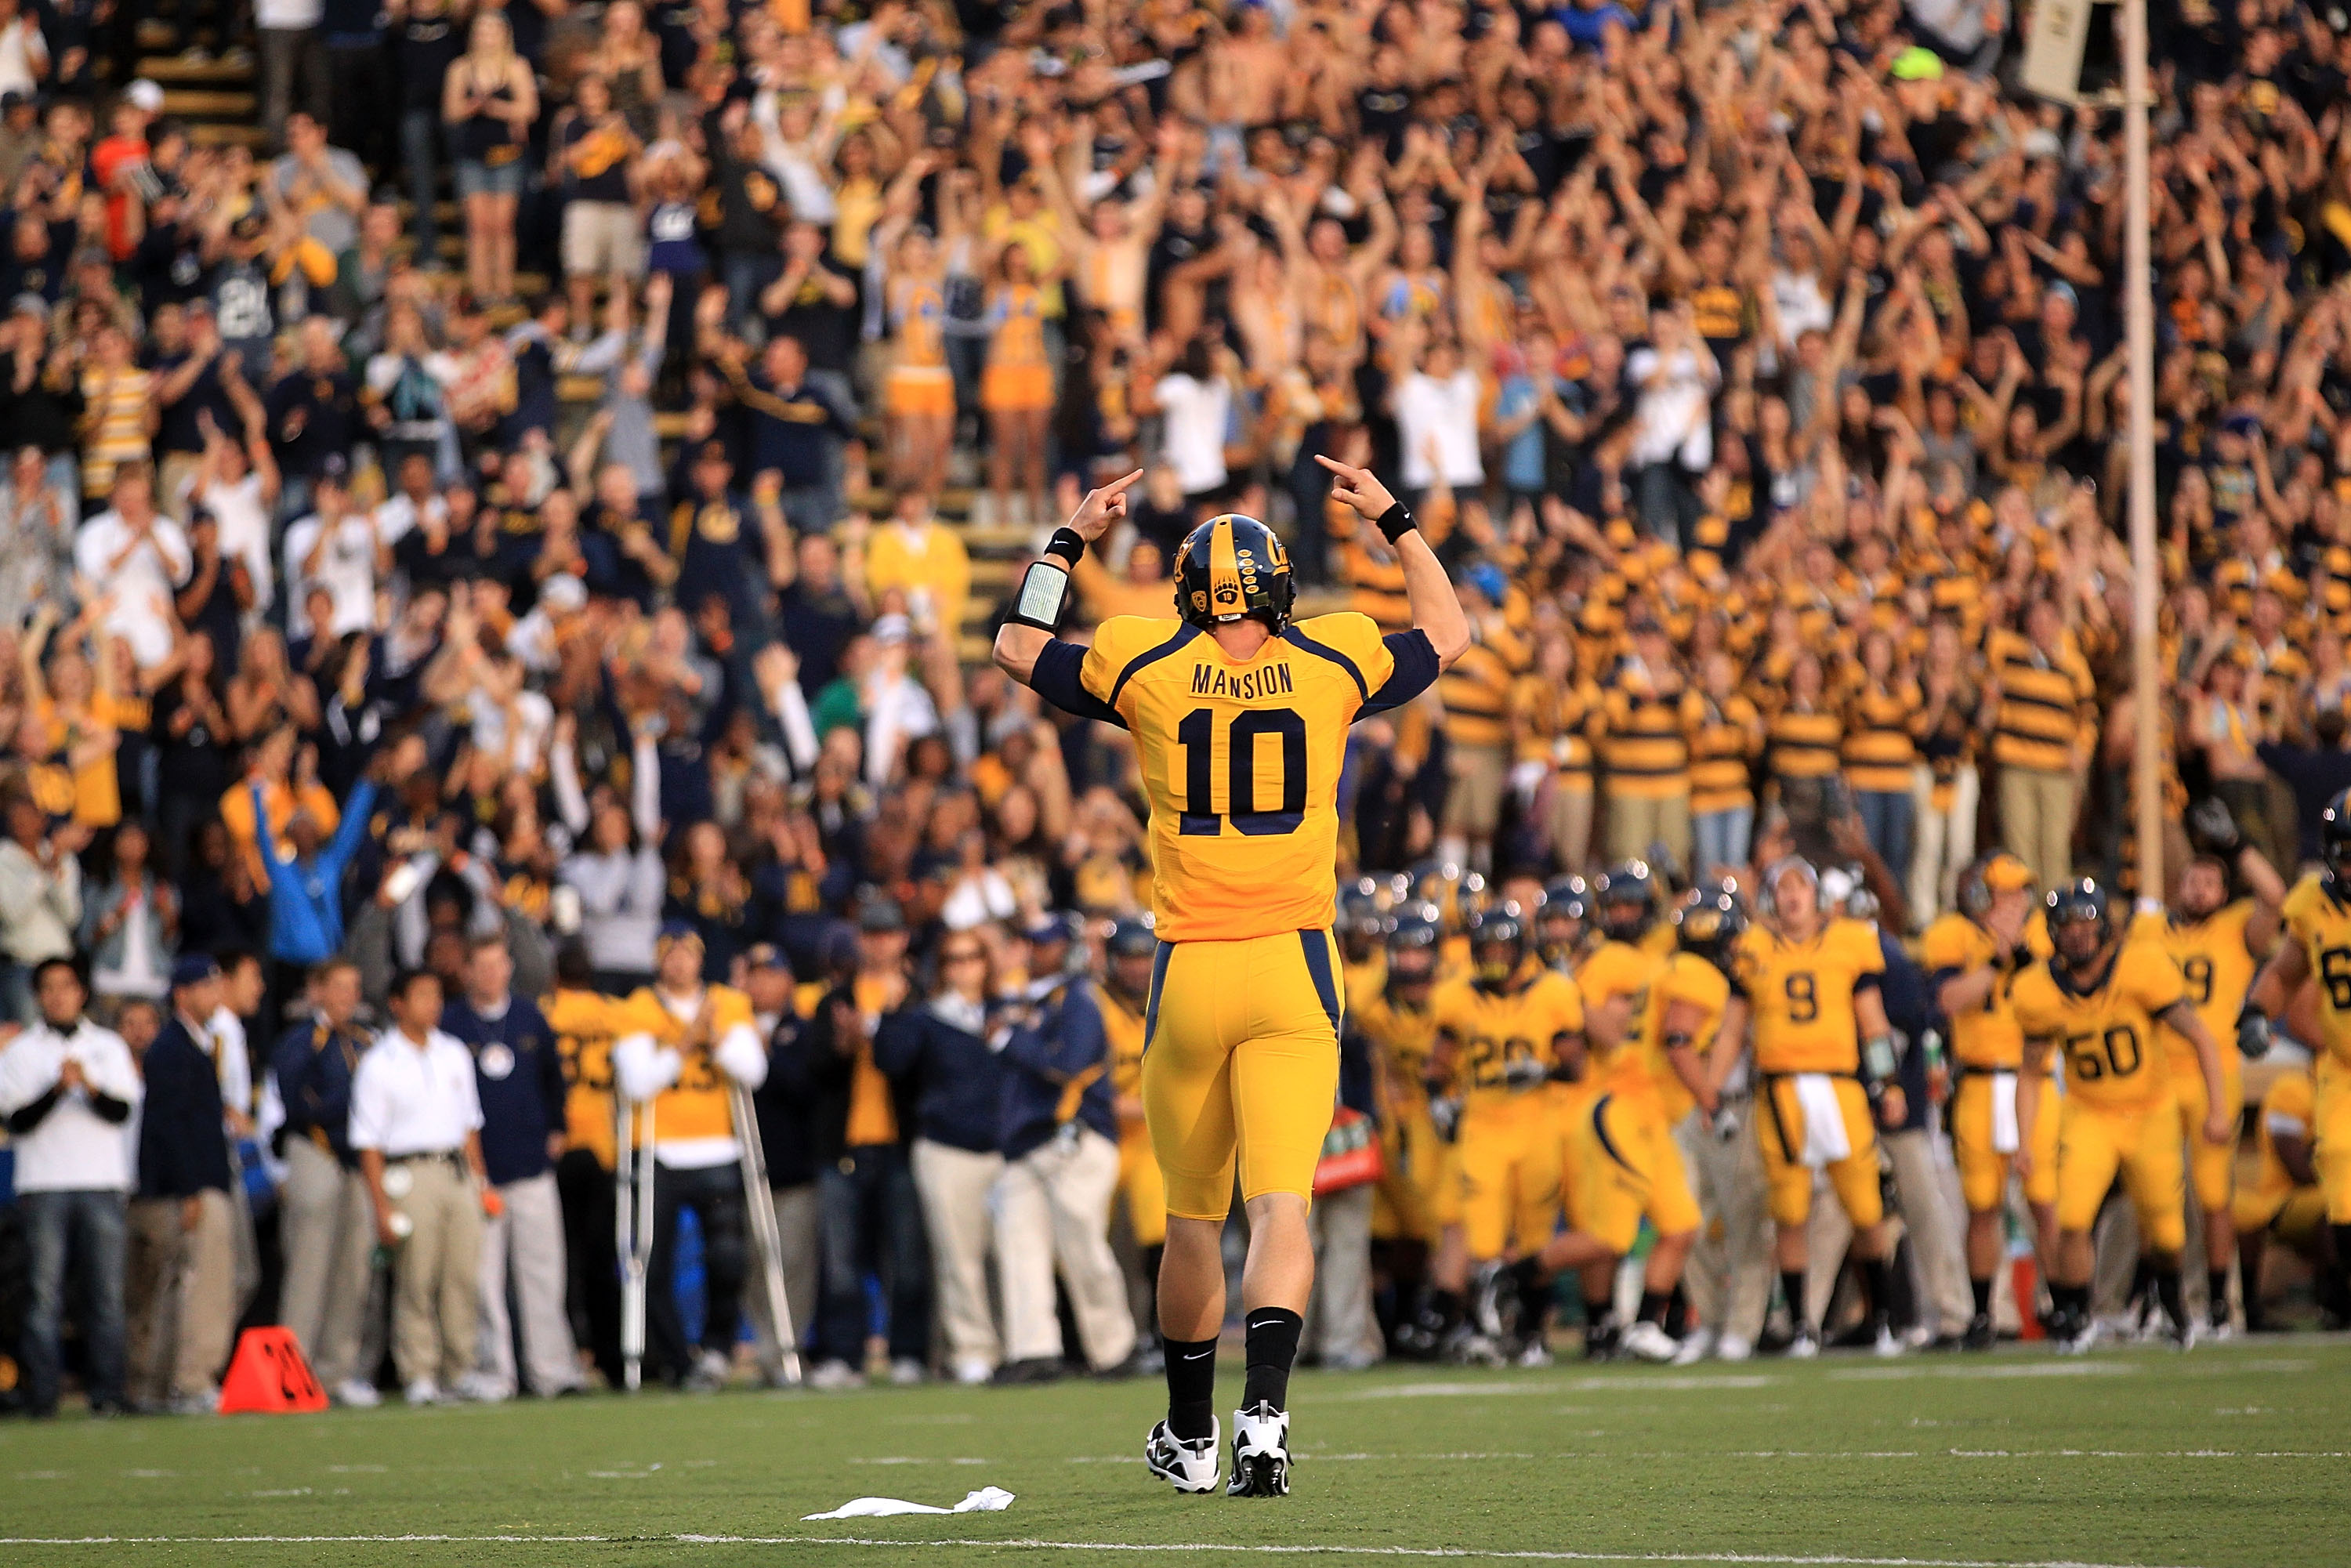 BERKELEY, CA - NOVEMBER 13:  Brock Mansion #10 of the California Golden Bears celebrates after they scored a touchdown against the Oregon Ducks at California Memorial Stadium on November 13, 2010 in Berkeley, California.  (Photo by Ezra Shaw/Getty Images)